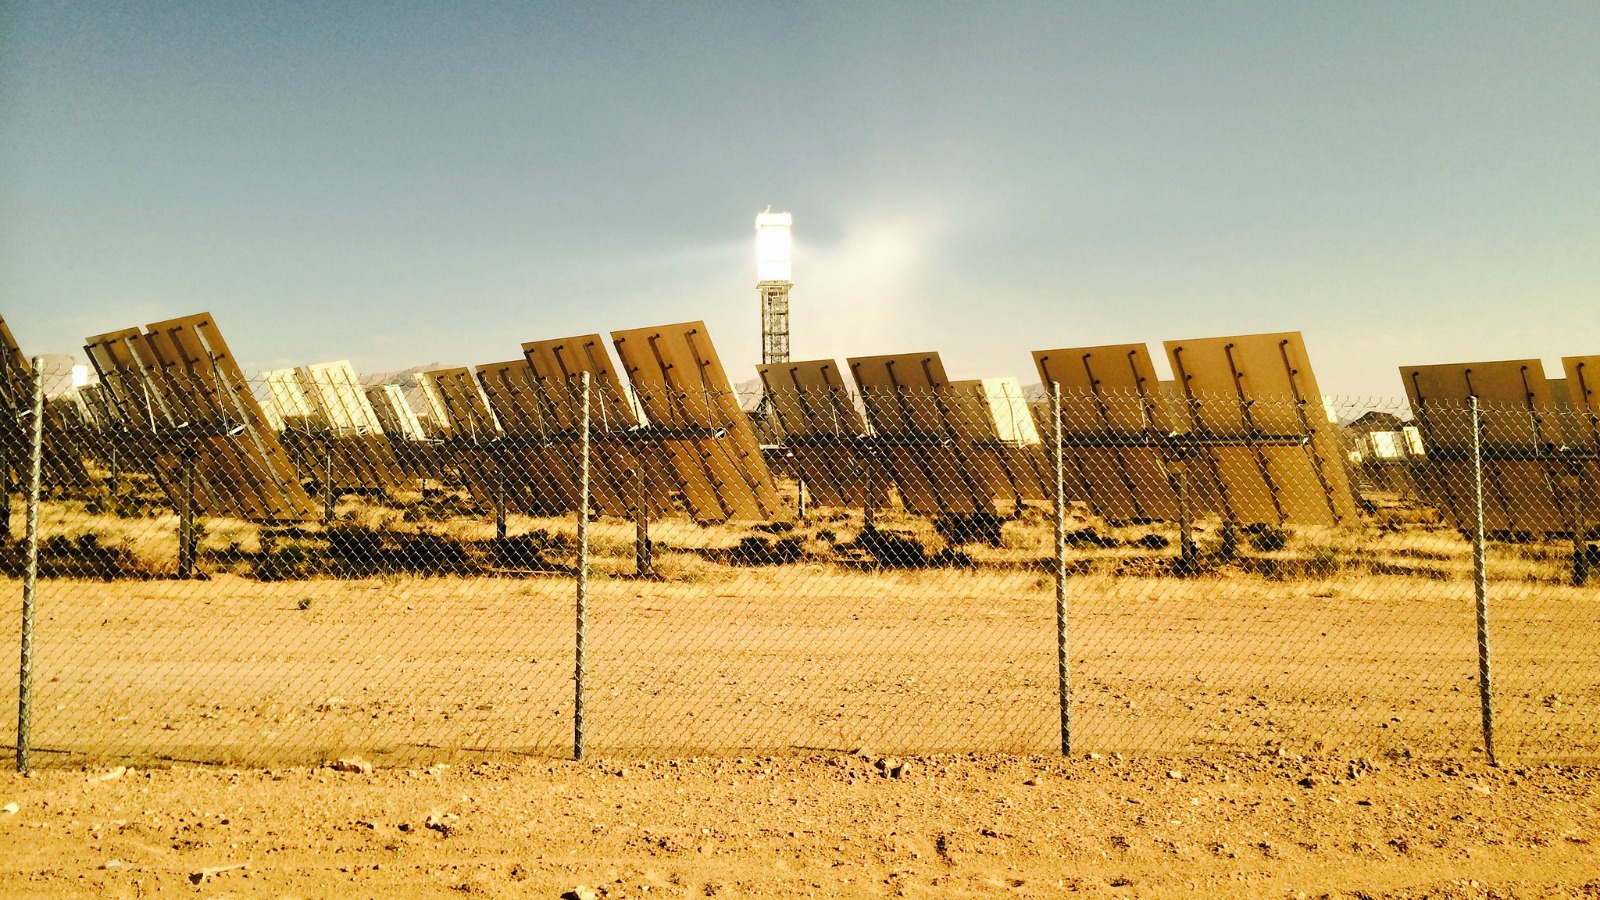 A solar power project built in the Nevada desert to help utilities comply with California's renewable energy rules.